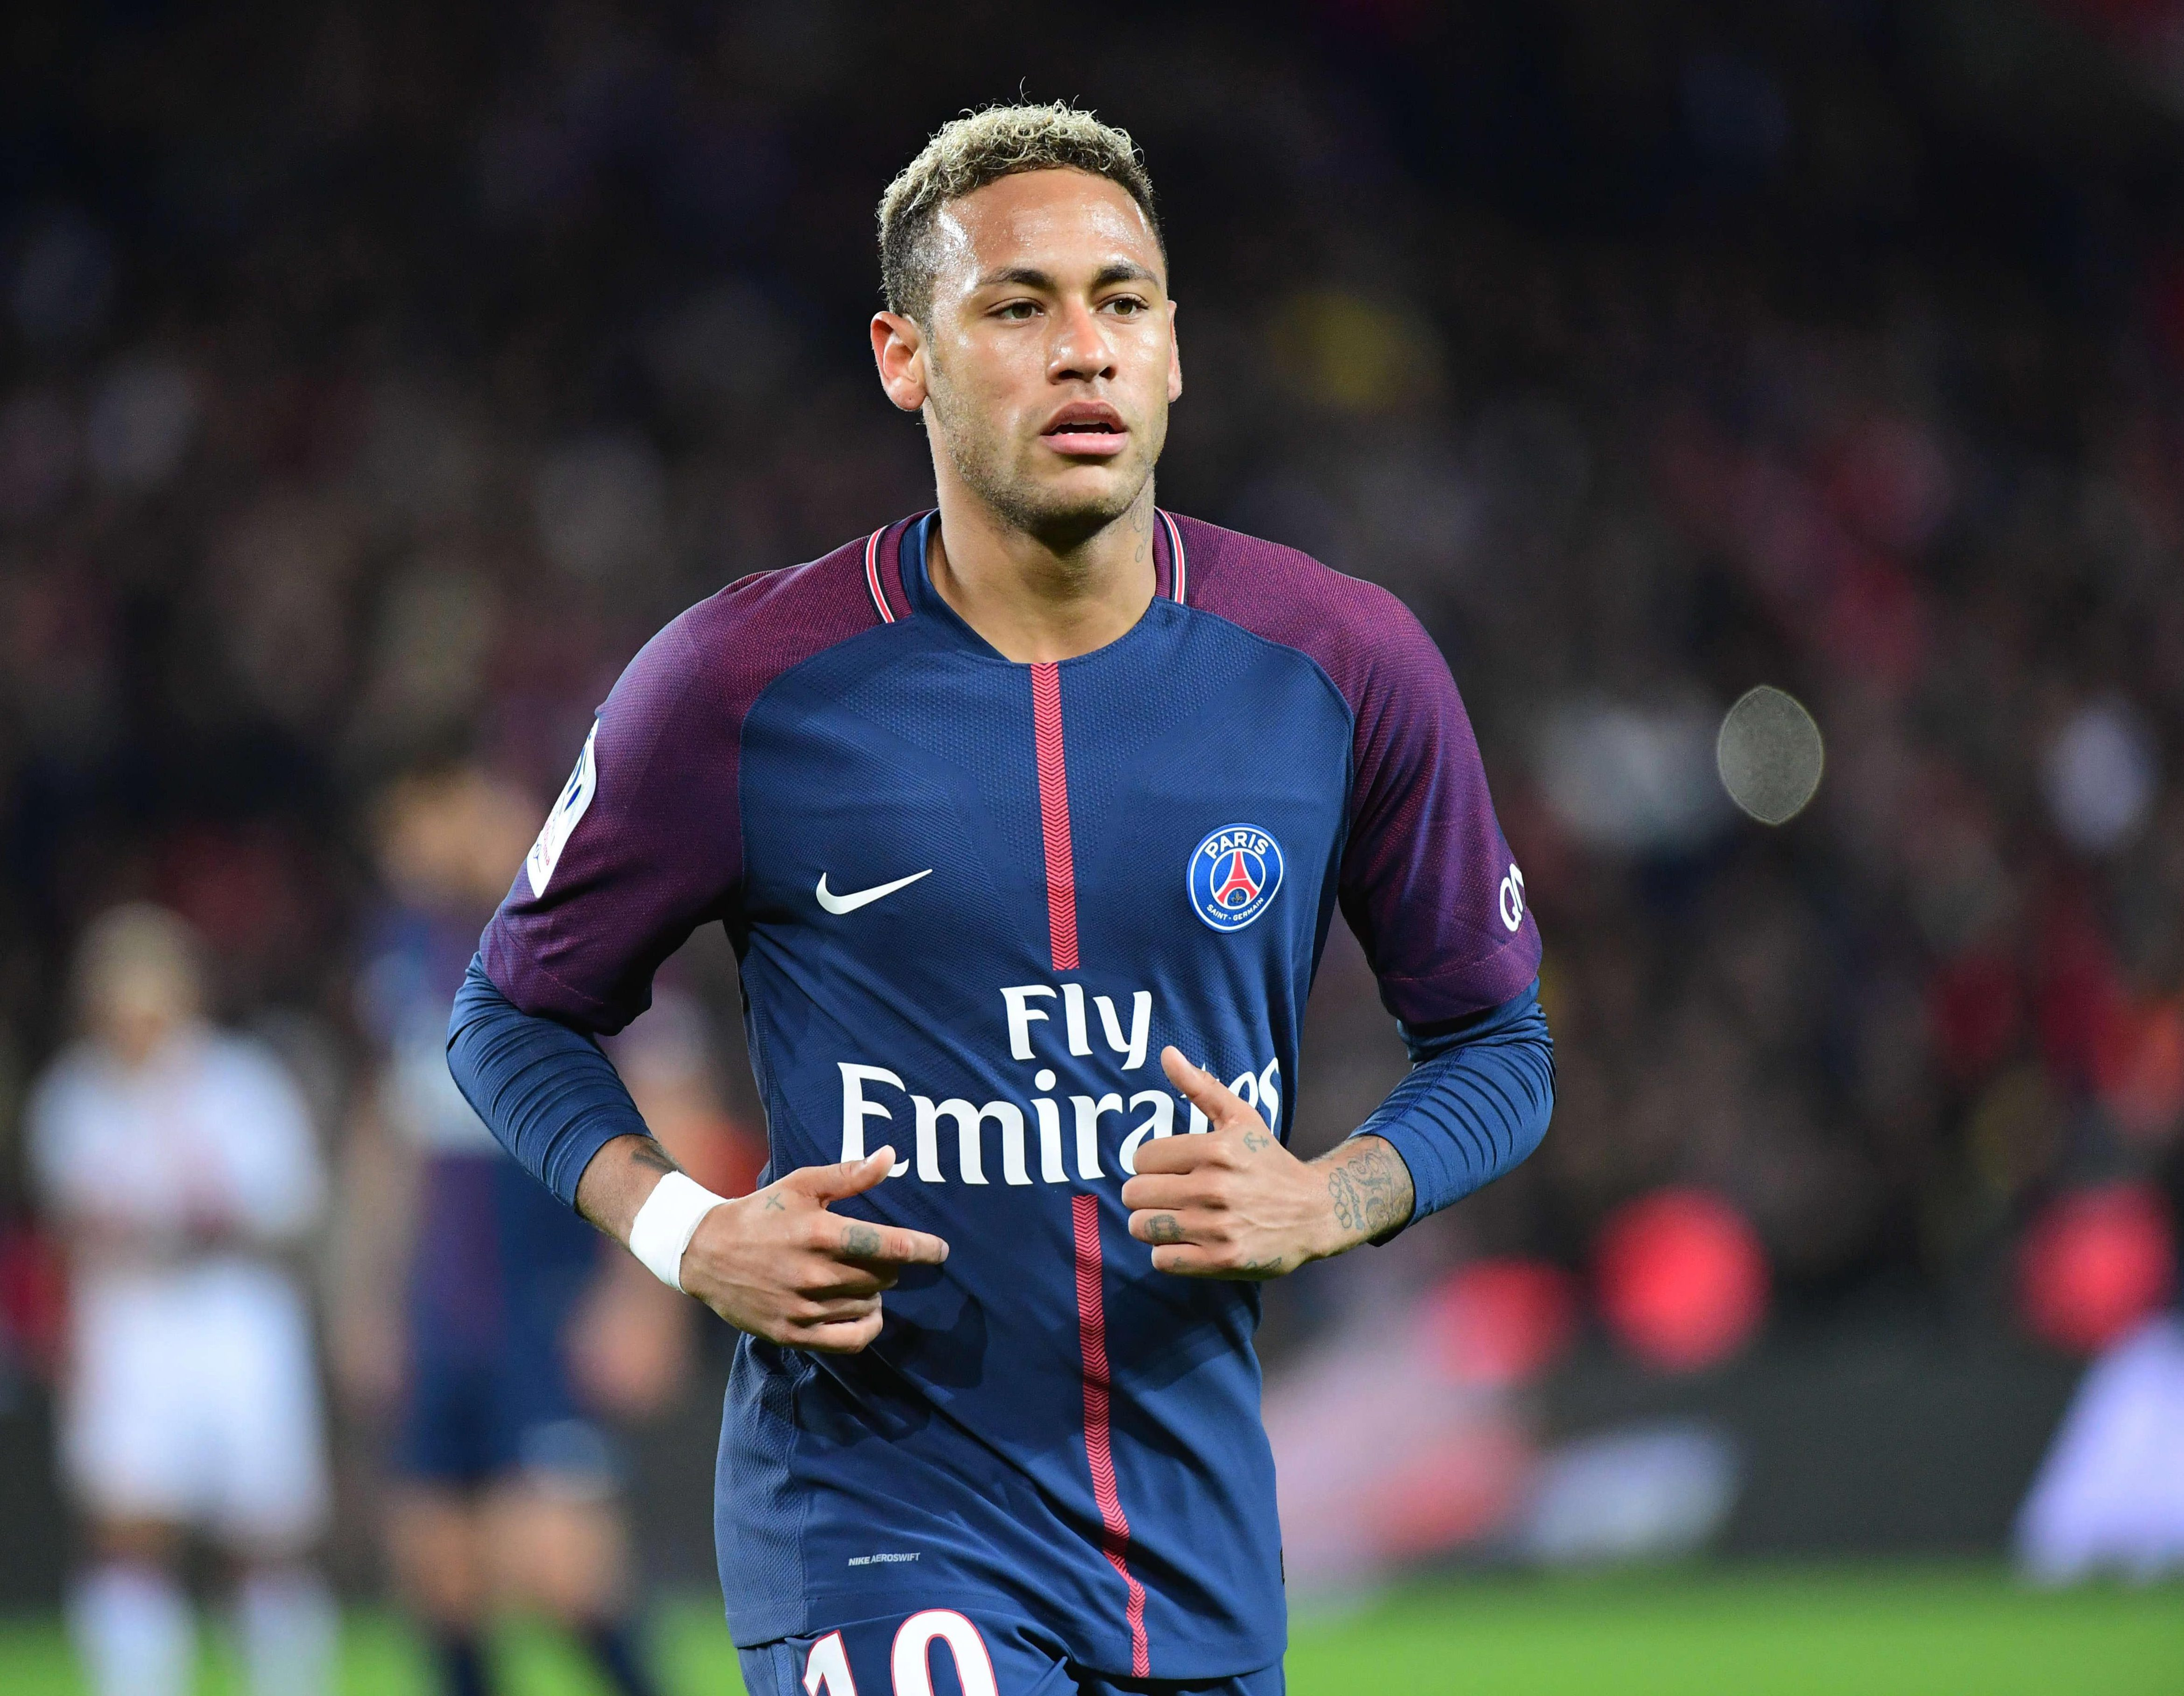 Critics have questioned Neymar's attitude in the past